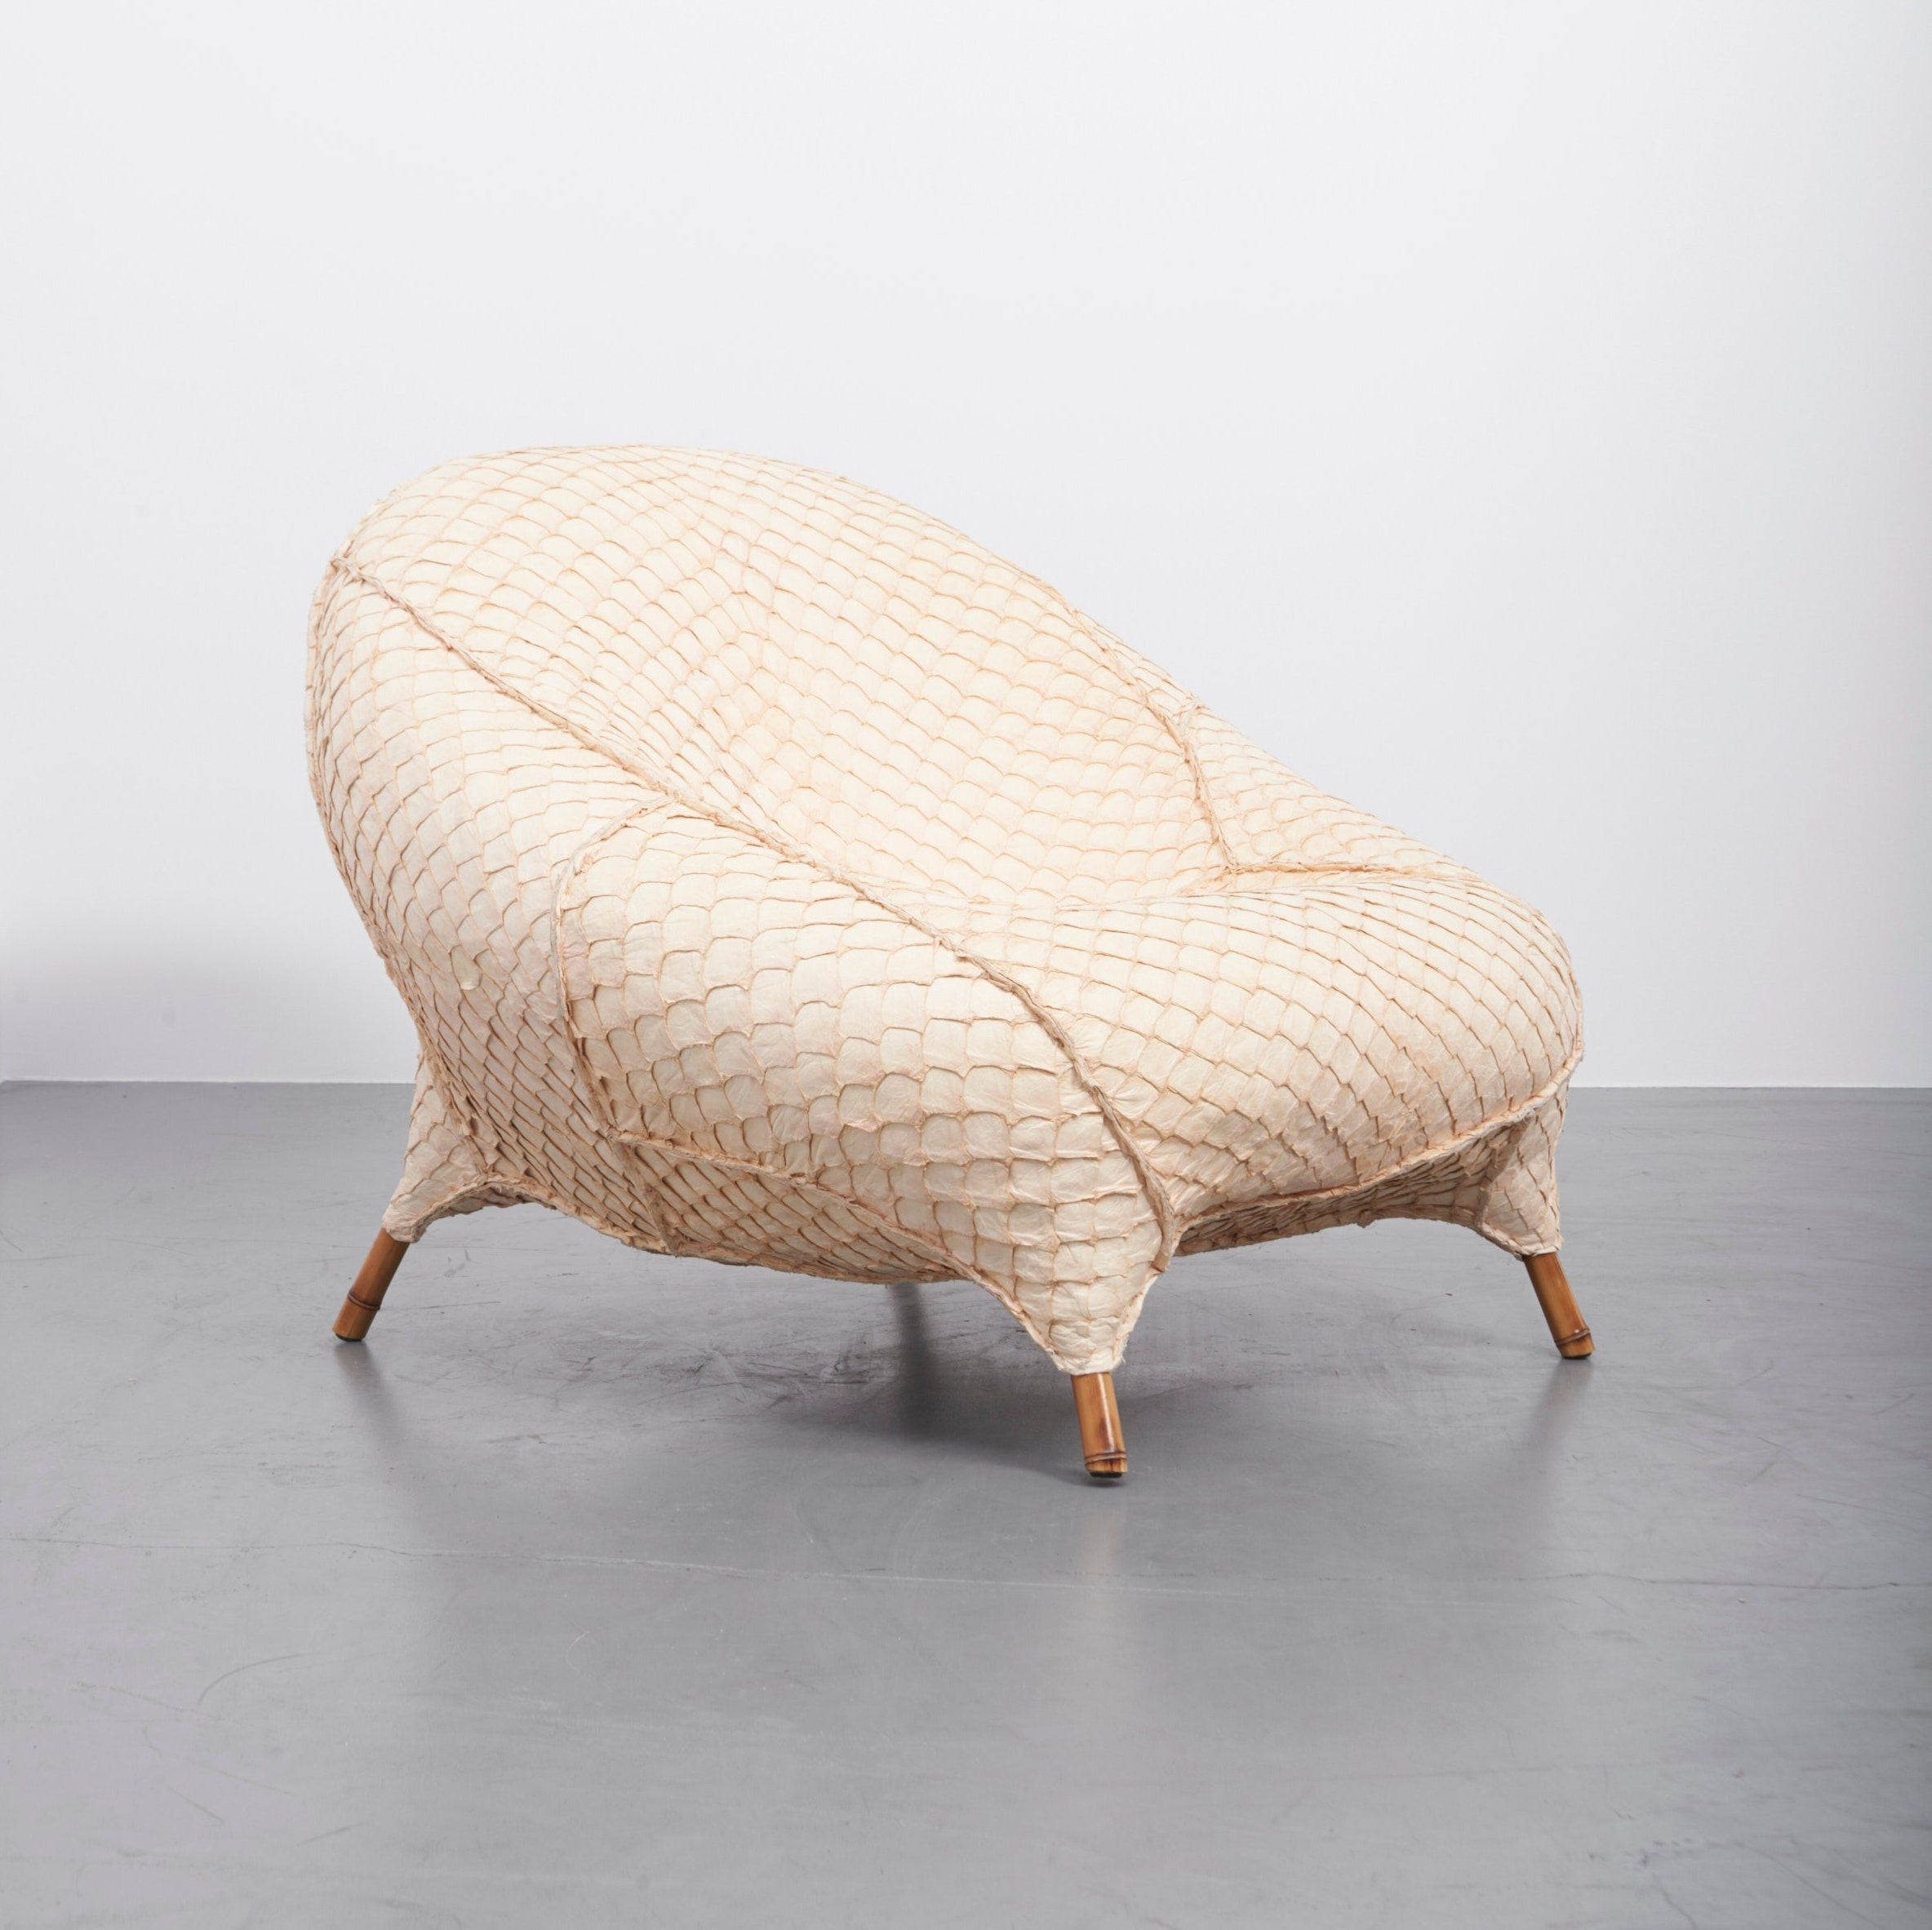 Pirarucu Armchair by the Campana Brothers for Carpenters Workshop Gallery, 2015. Photo © Carpenters Workshop Gallery